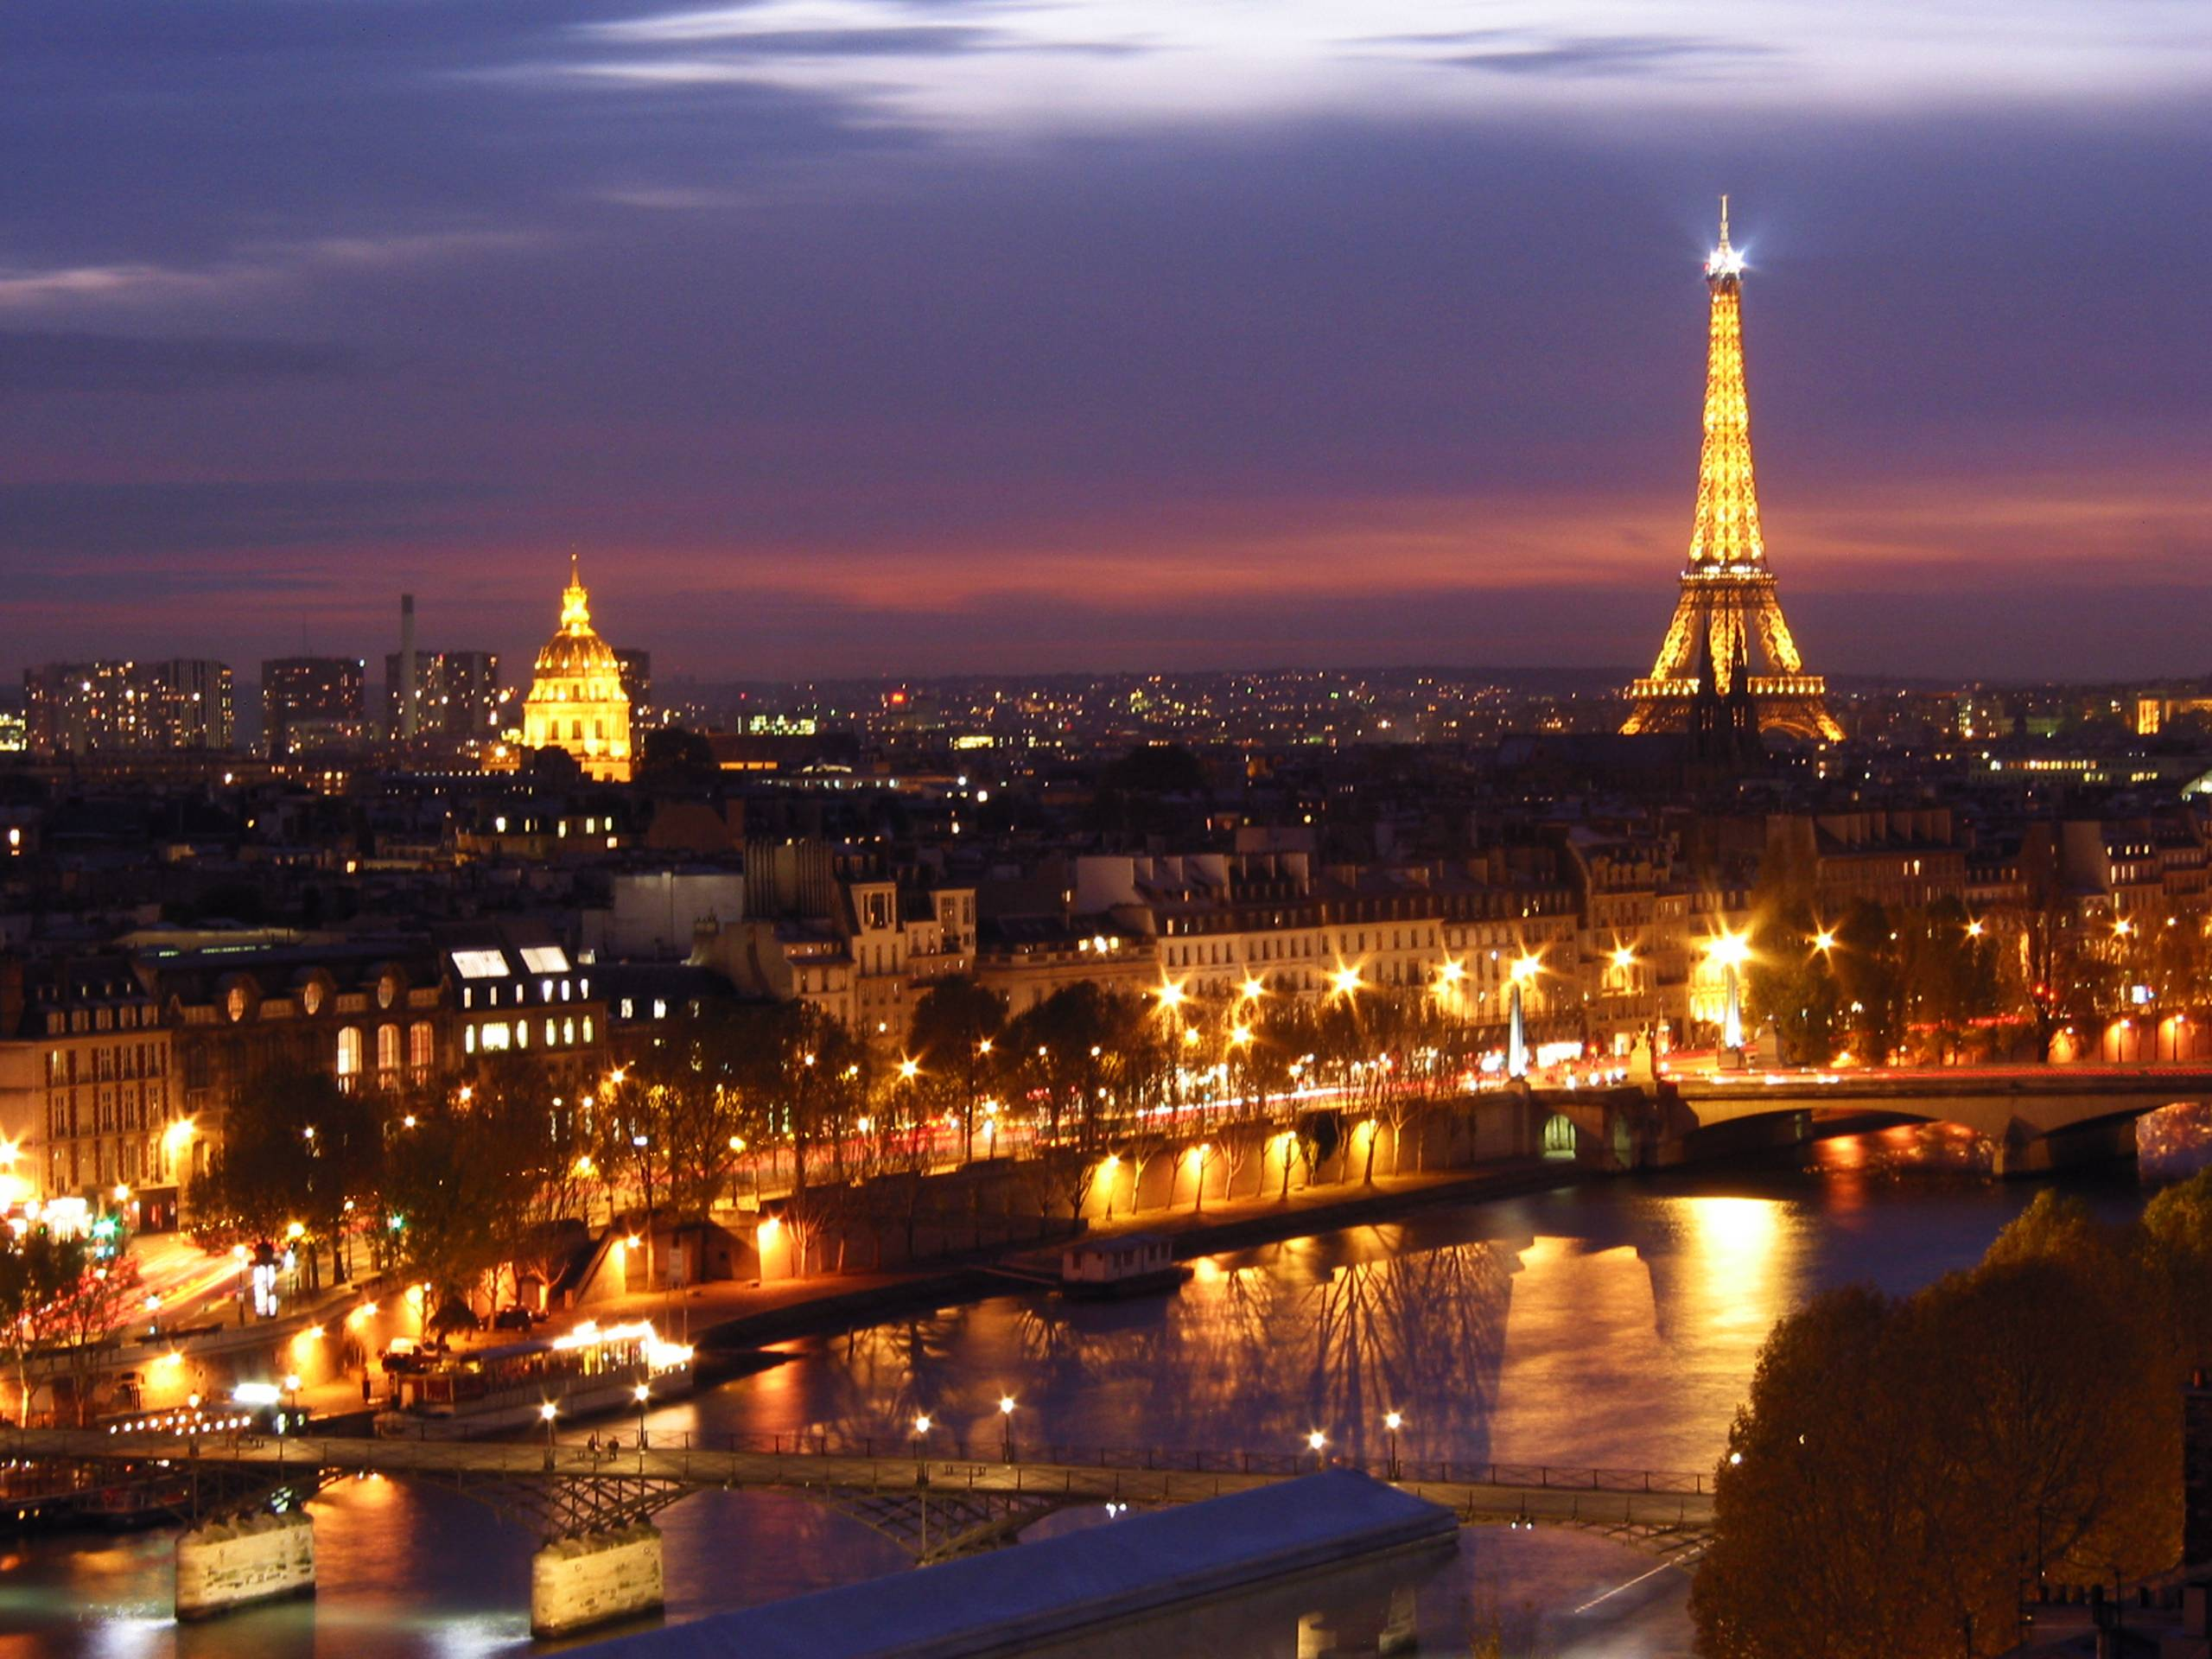 Paris TheWallpapers | Free Desktop Wallpapers for HD, Widescreen ...